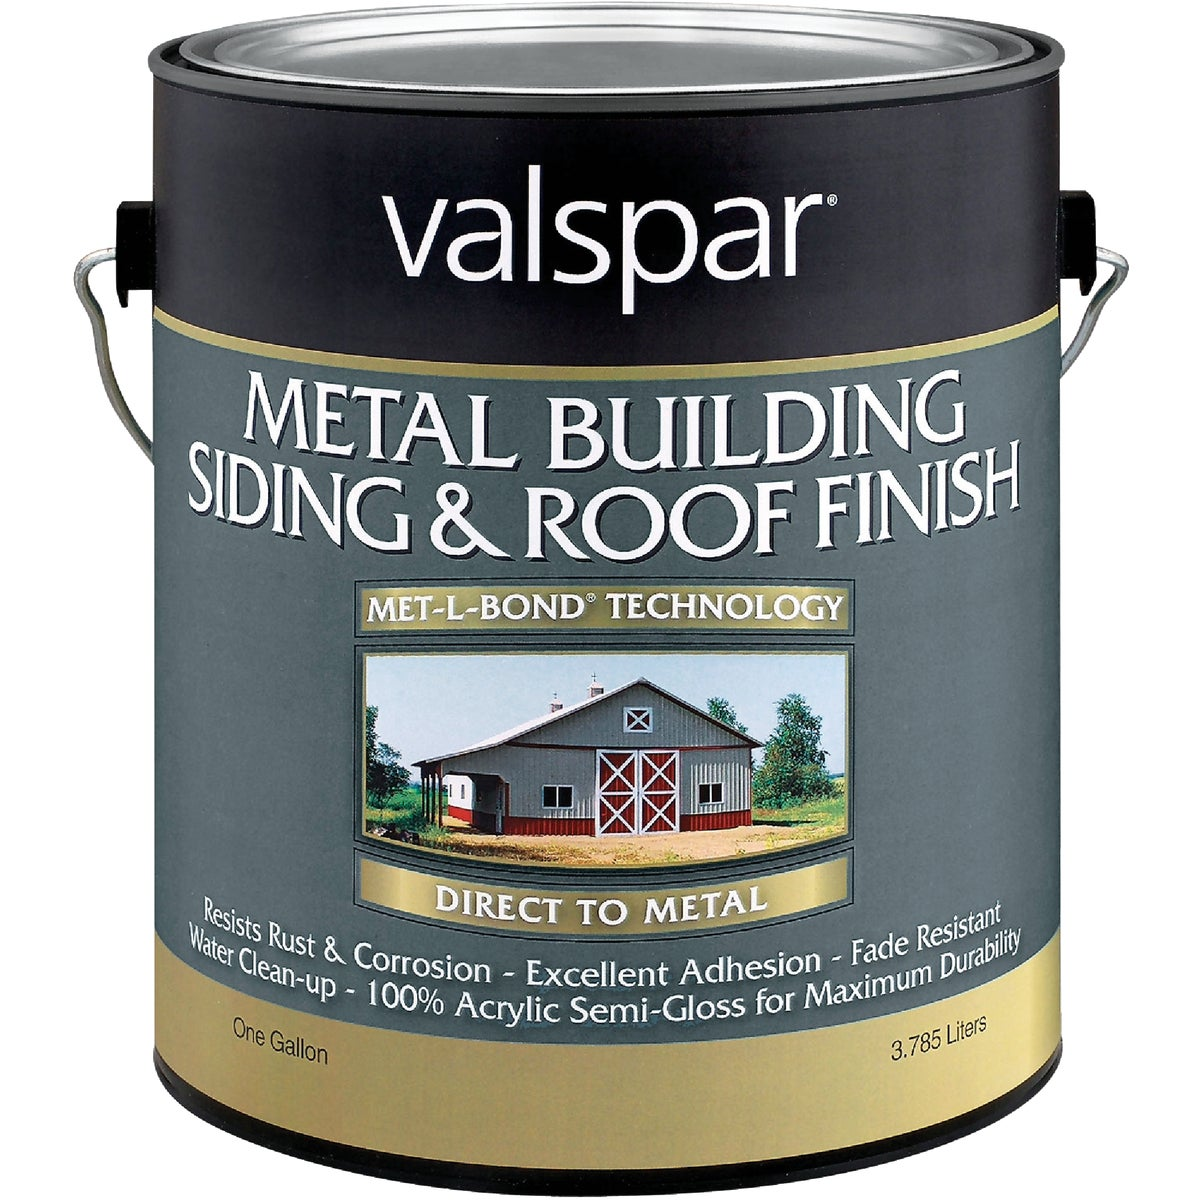 LTX GREEN ROOF PAINT - 027.0004261.007 by Valspar Corp